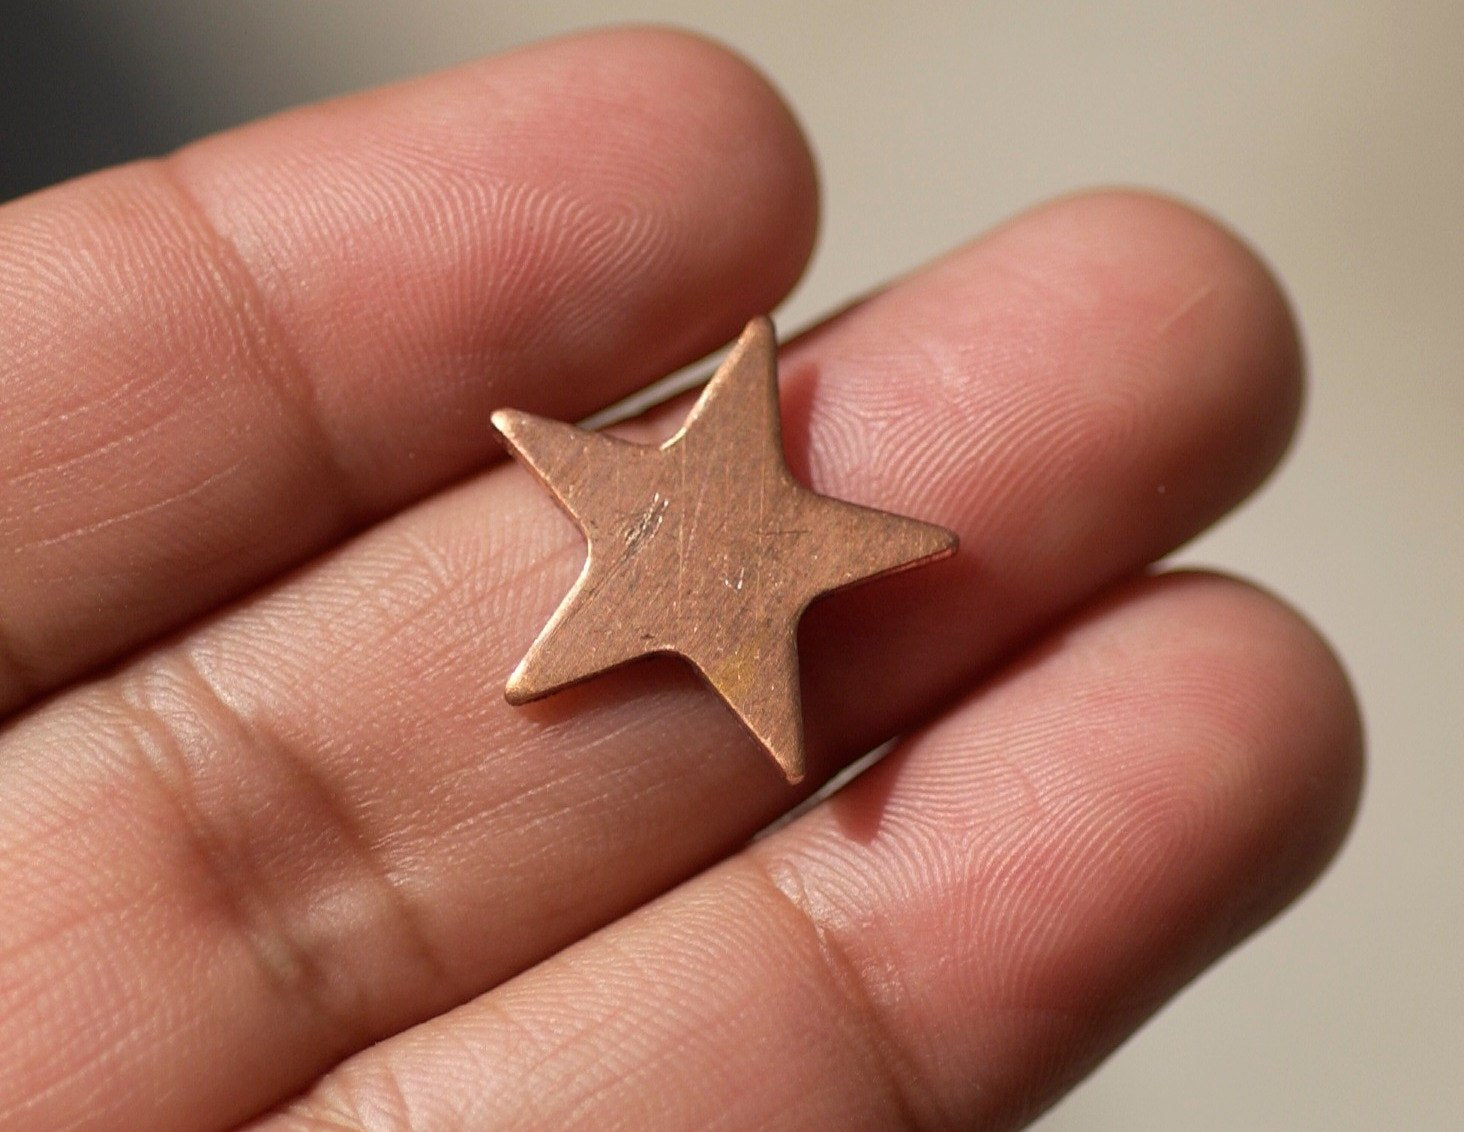 Stars in Lotus Flowers Pattern 17mm Cutout for Enameling Stamping Texturing Soldering Blanks Variety of Metals